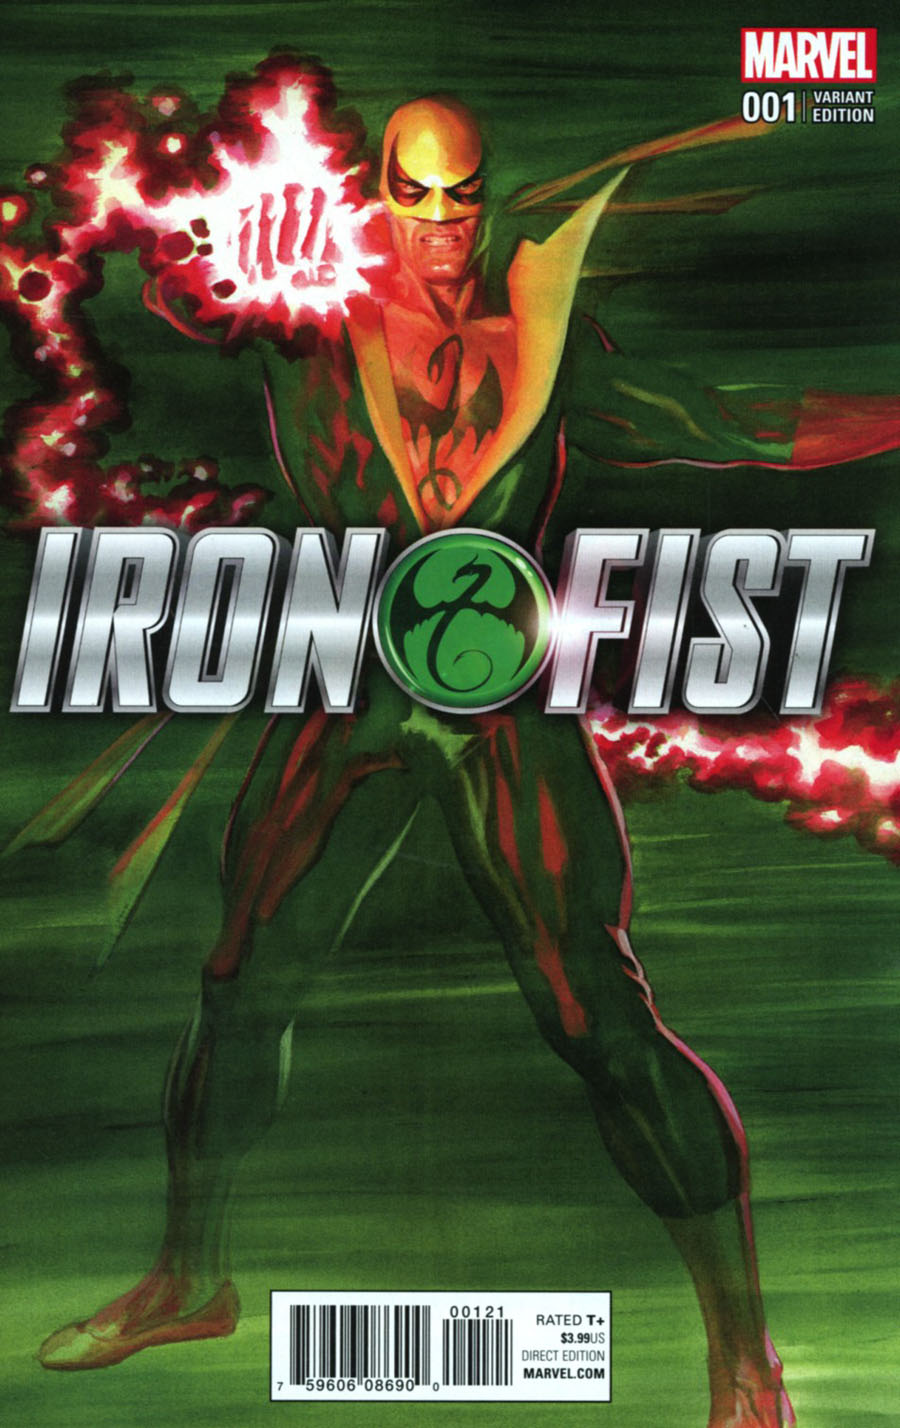 Iron Fist Vol 5 #1 Cover F Incentlve Alex Ross Color Variant Cover